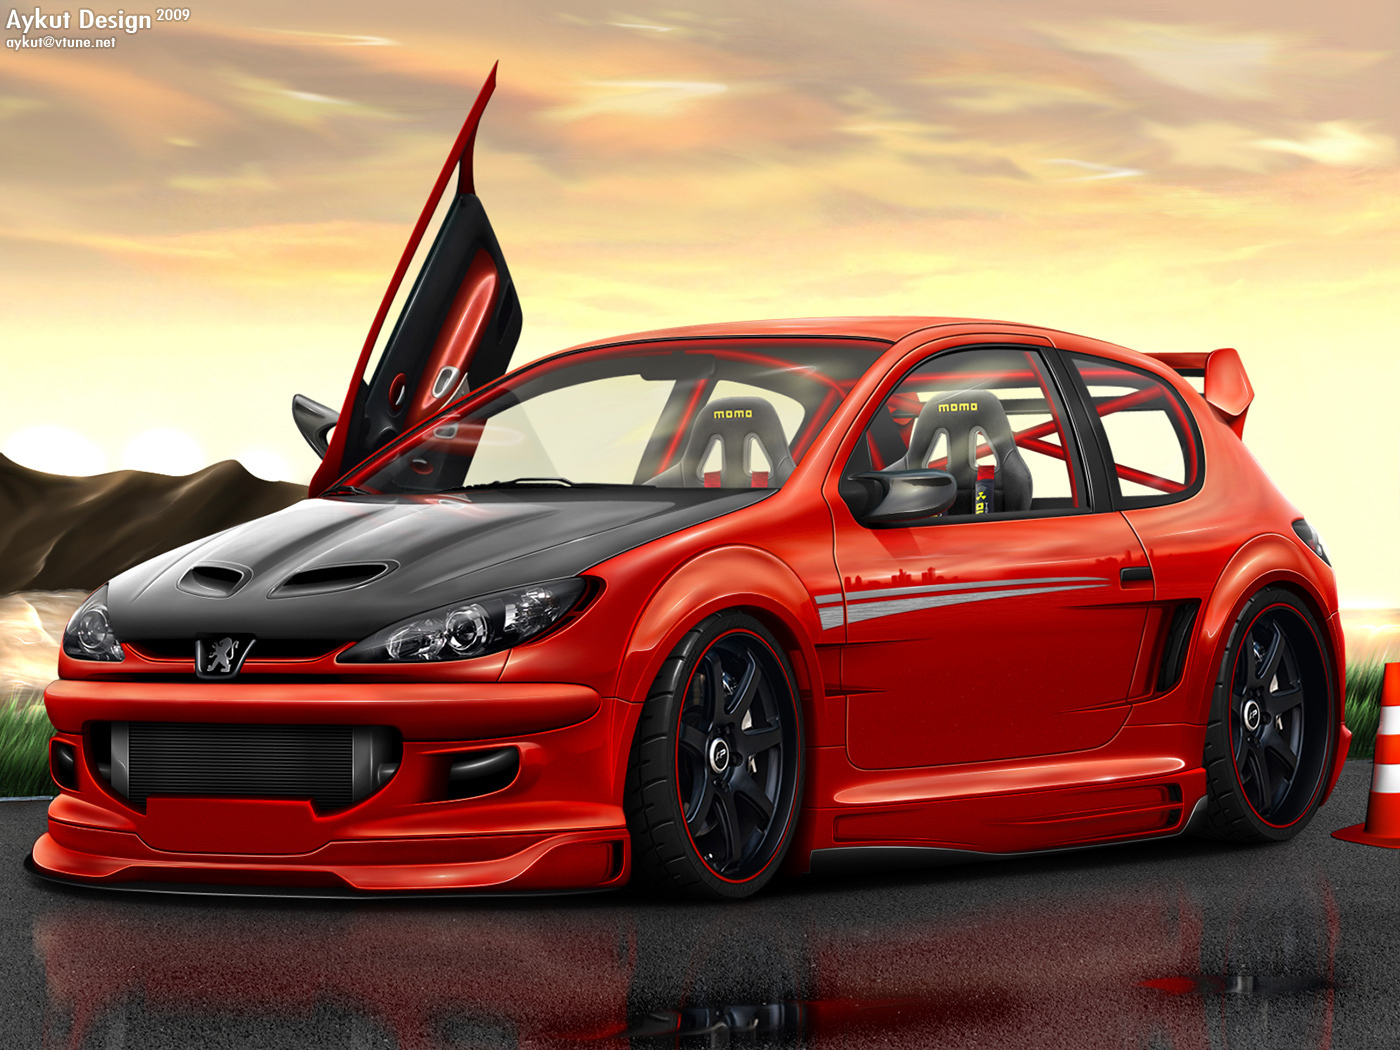 pic new posts  peugeot 206 wallpaper free download